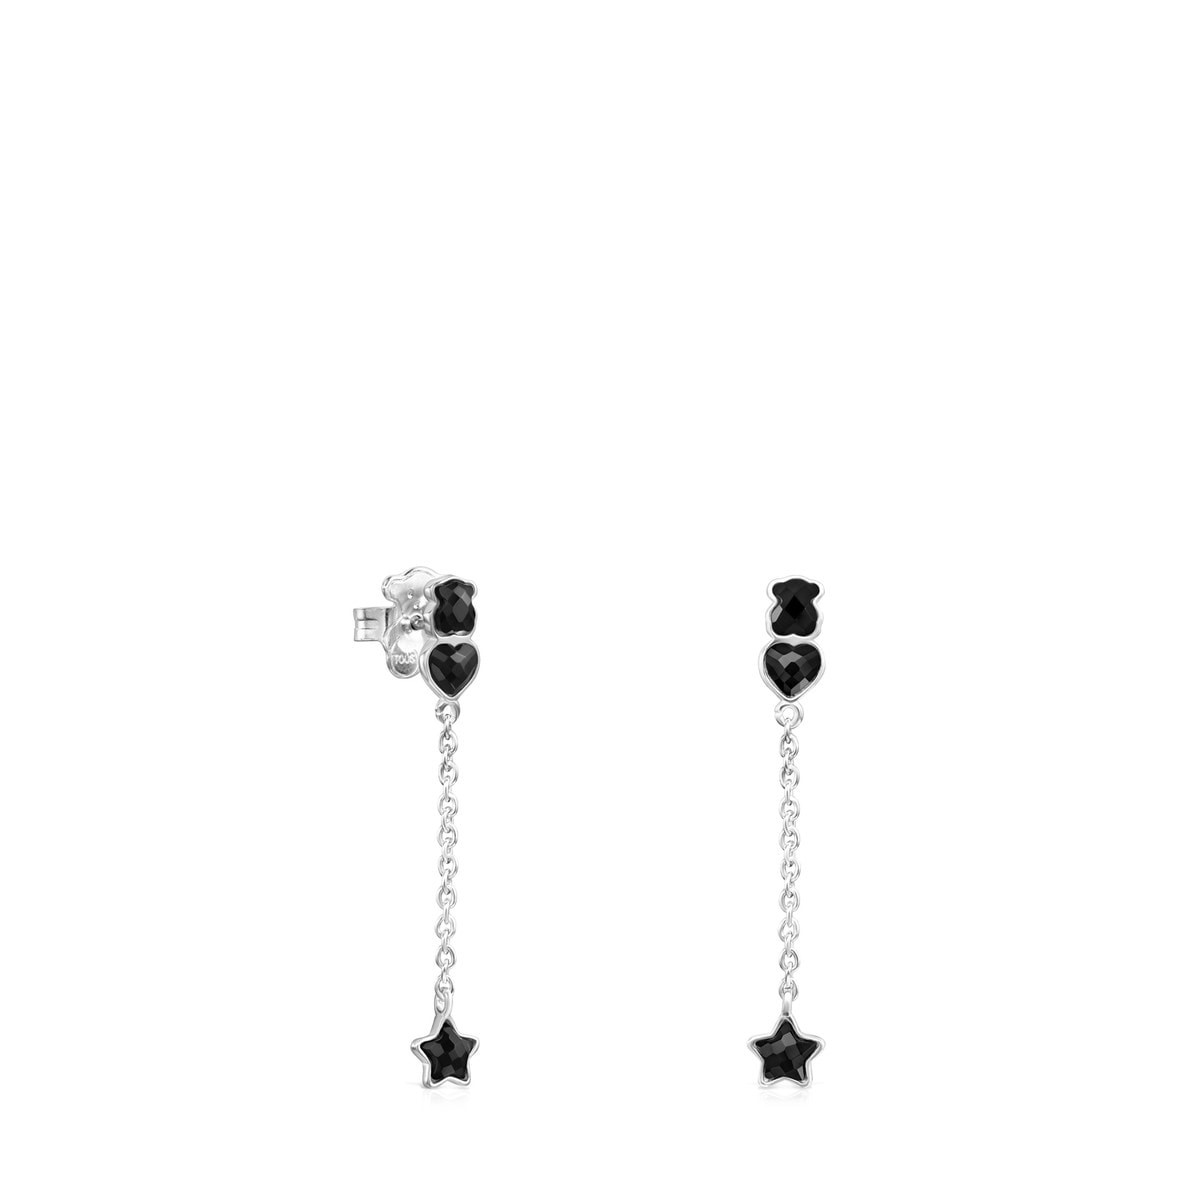 Short Mini Onix Earrings in Silver with Onyx